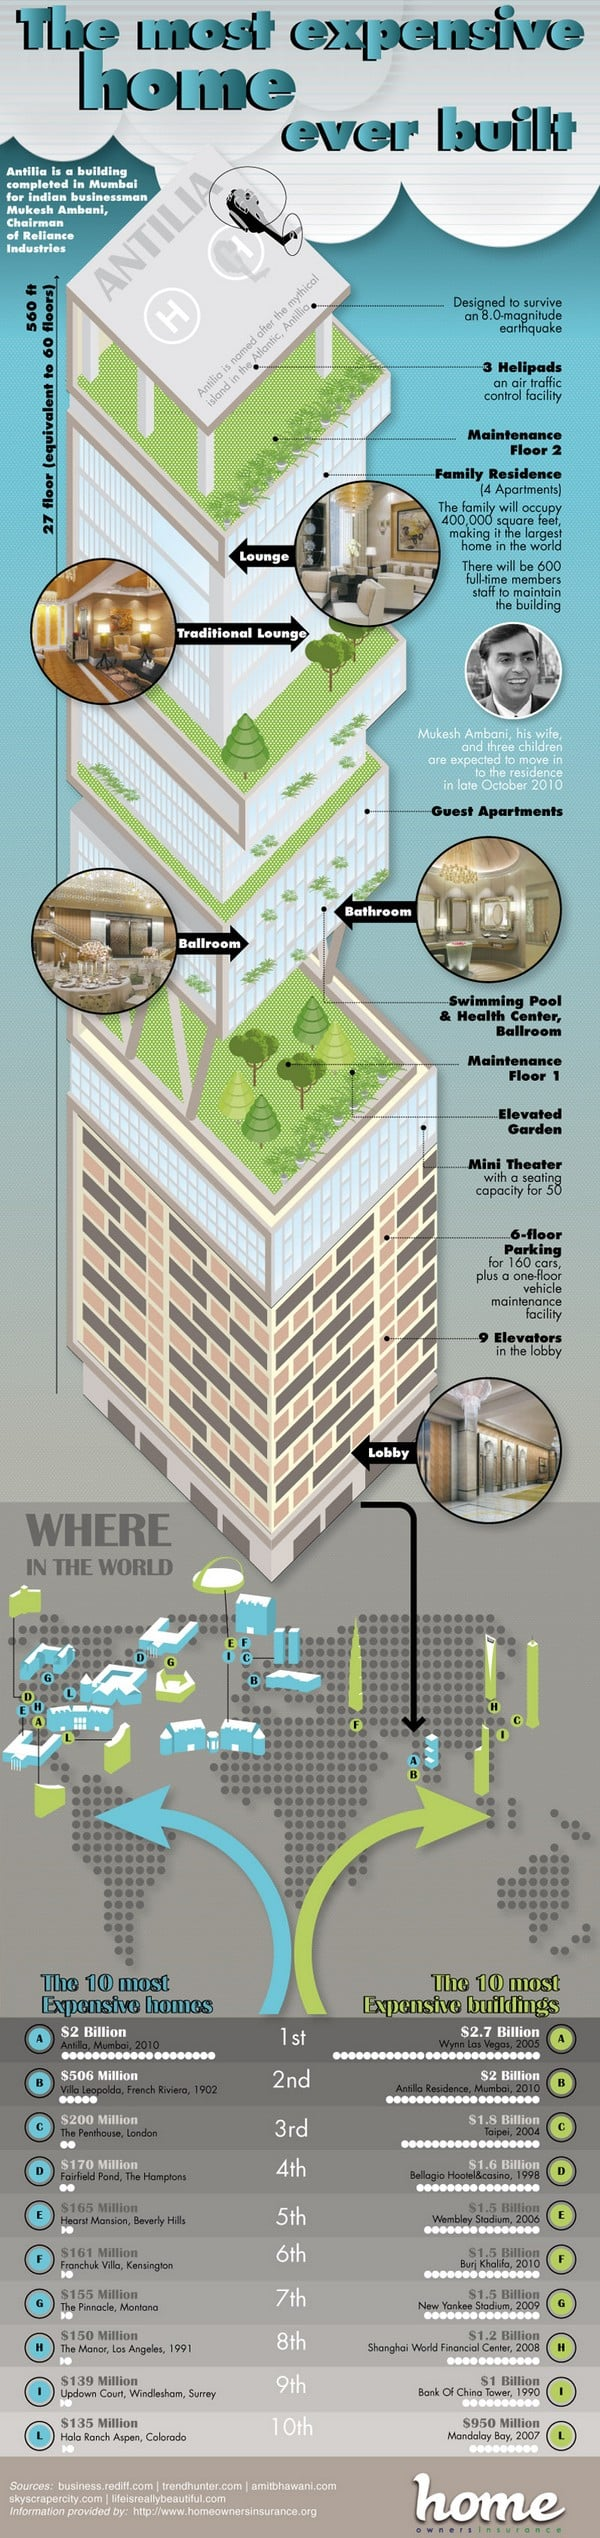 AntiliaExpensiveHome infographic